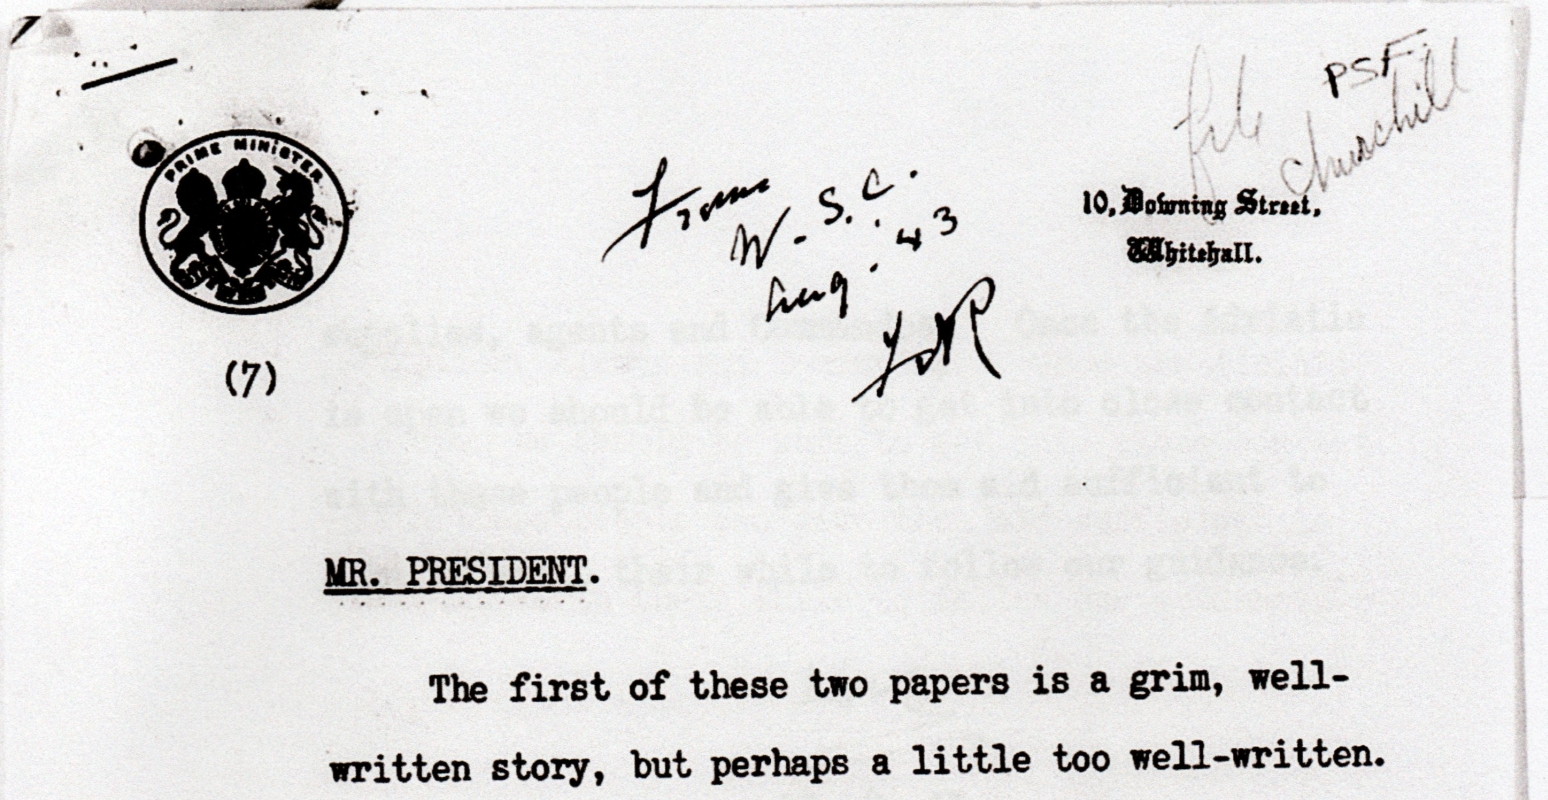 The top part of